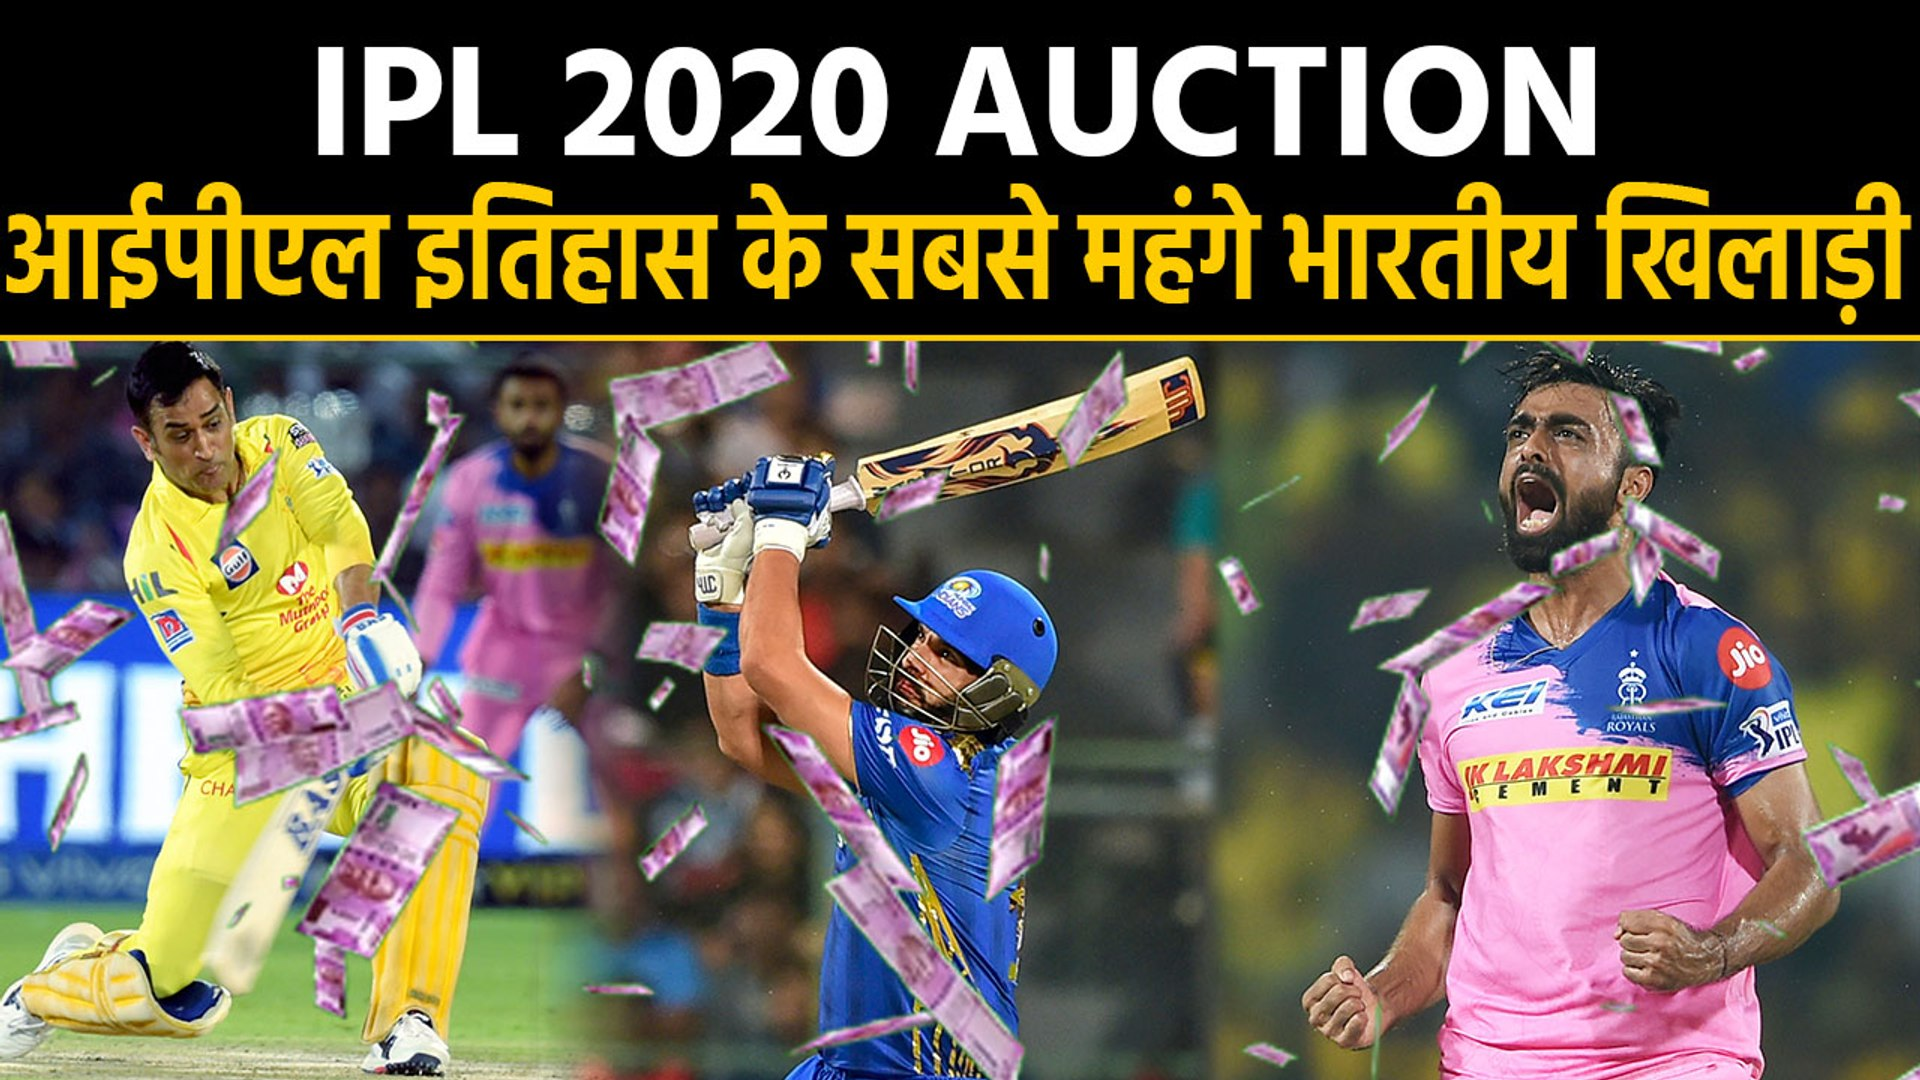 IPL 2020 Auction: MS Dhoni to Yuvraj  Singh, 4 most expensive Indian players | वनइंडिया हिंदी